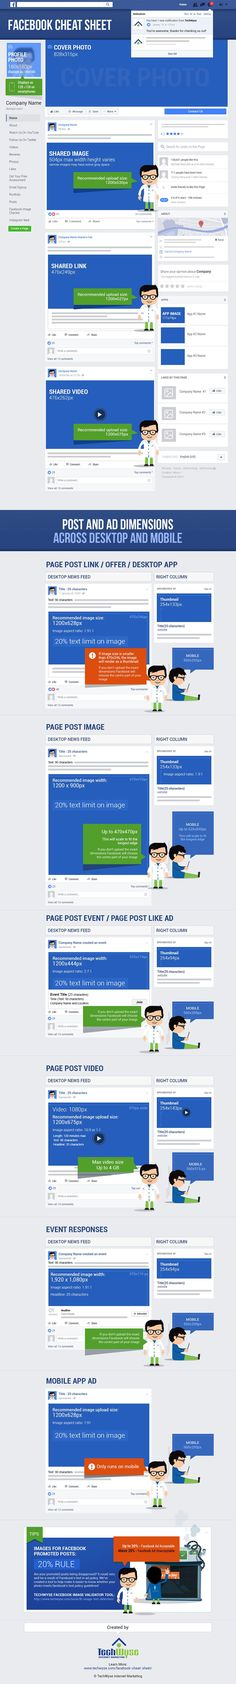 Infographic : The 2017 Facebook Image Sizes Cheat Sheet